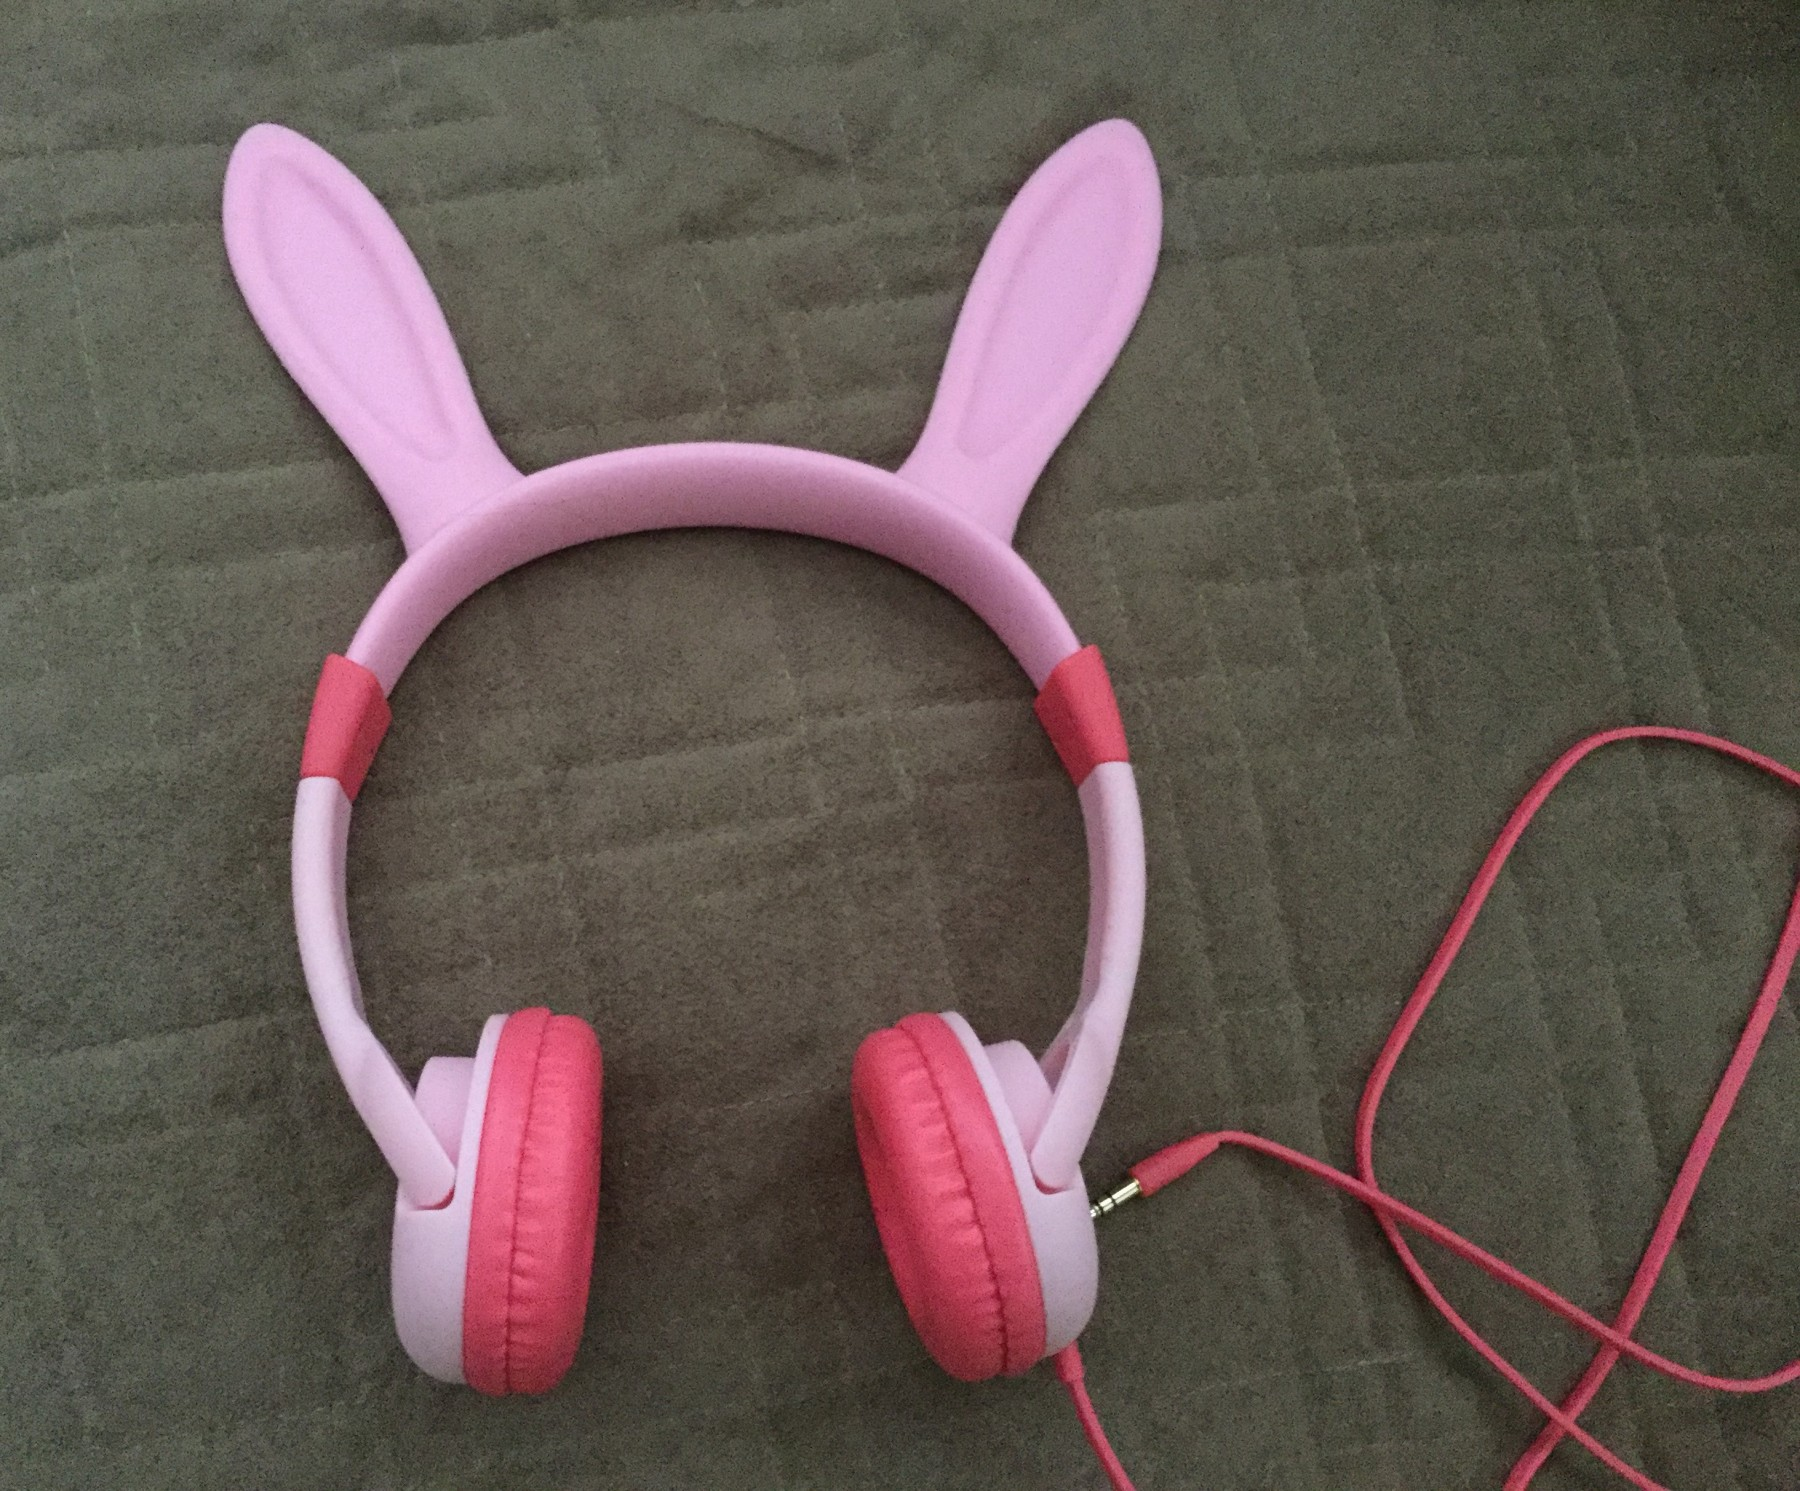 The perfect headphones for kids